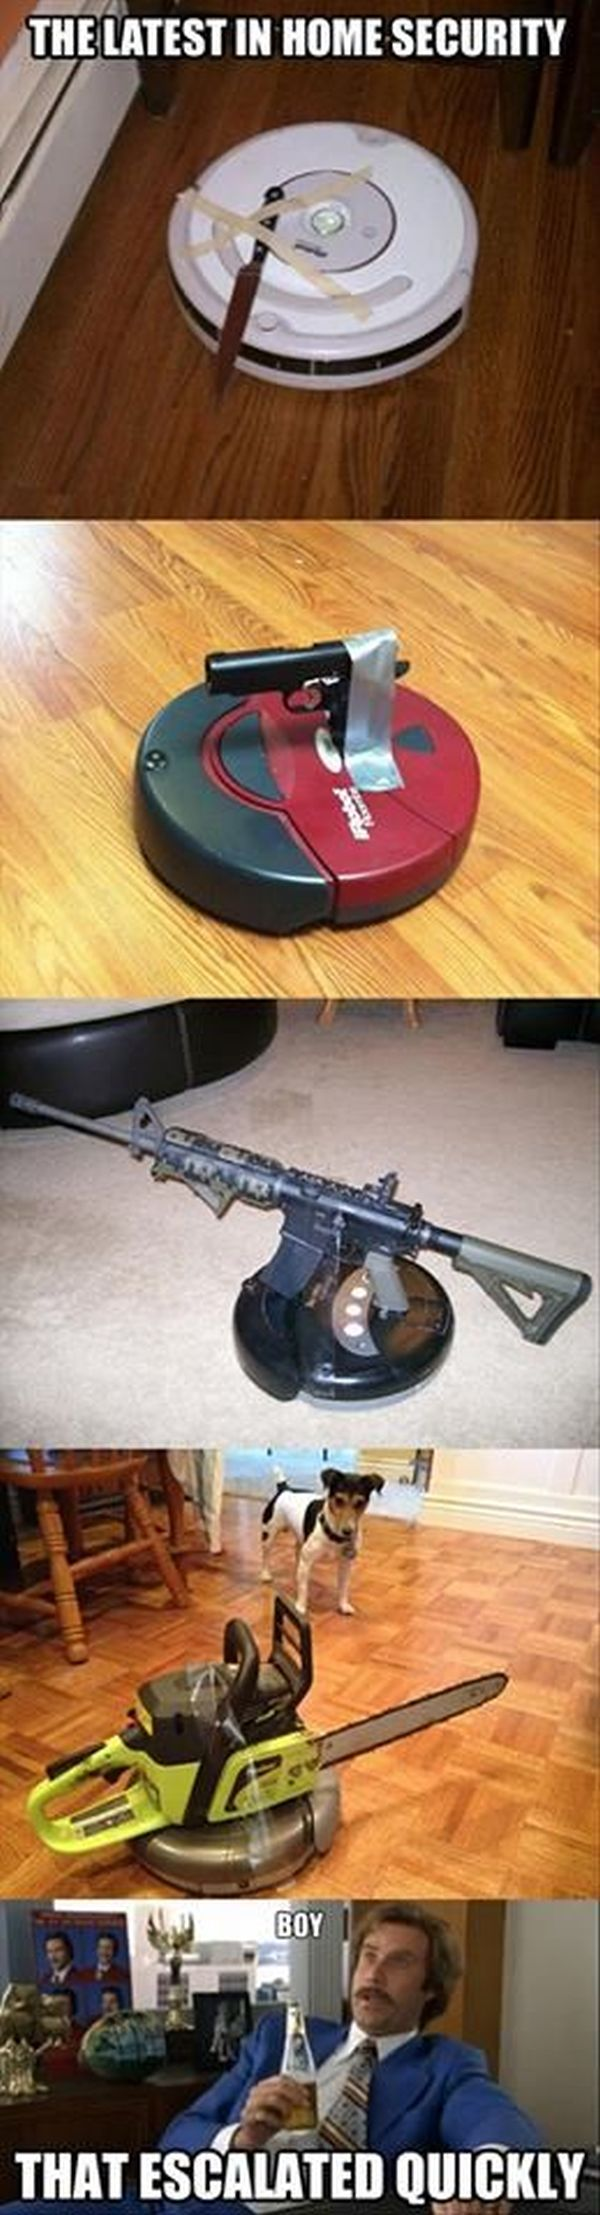 The Latest In Home Security